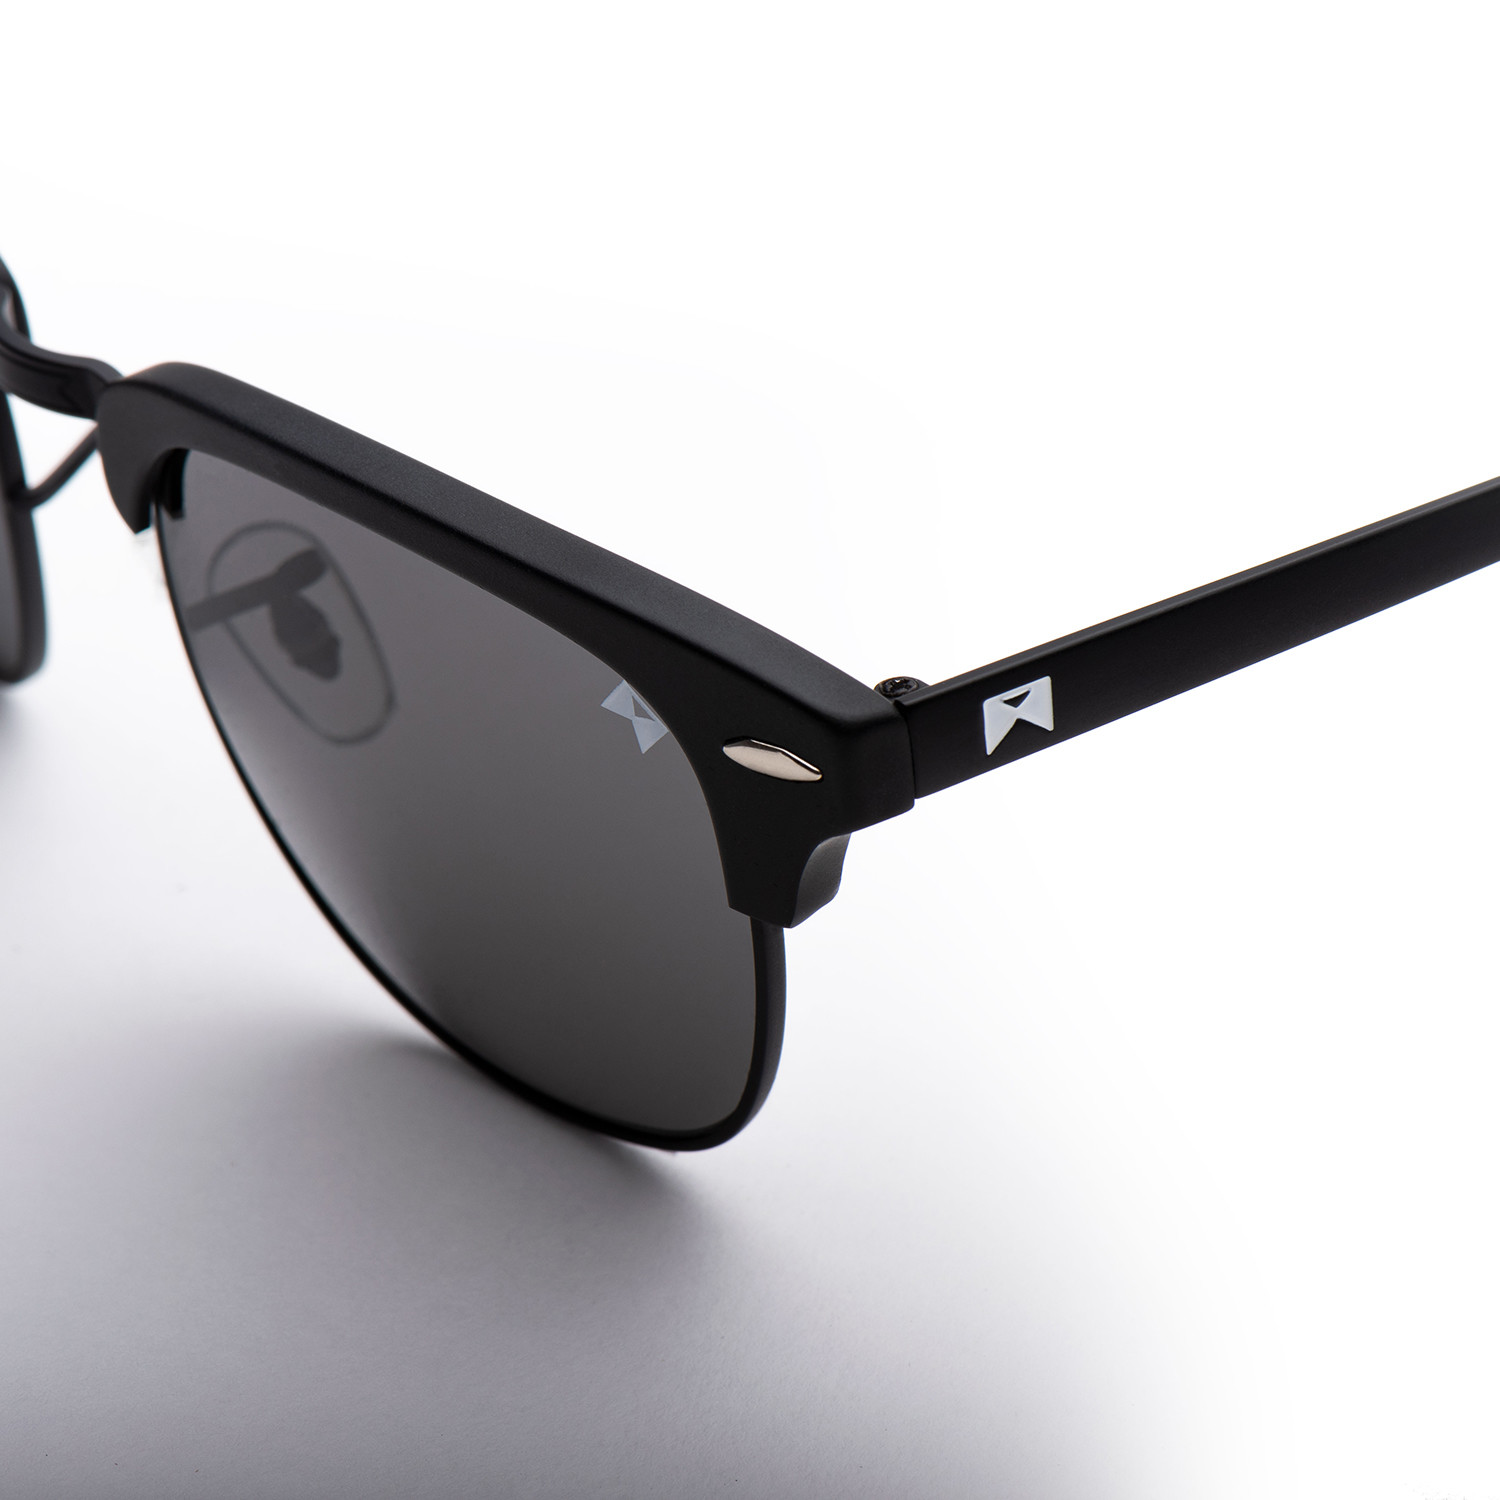 d53cde52f1 The Empire (Black Black) - William Painter Sunglasses - Touch of Modern